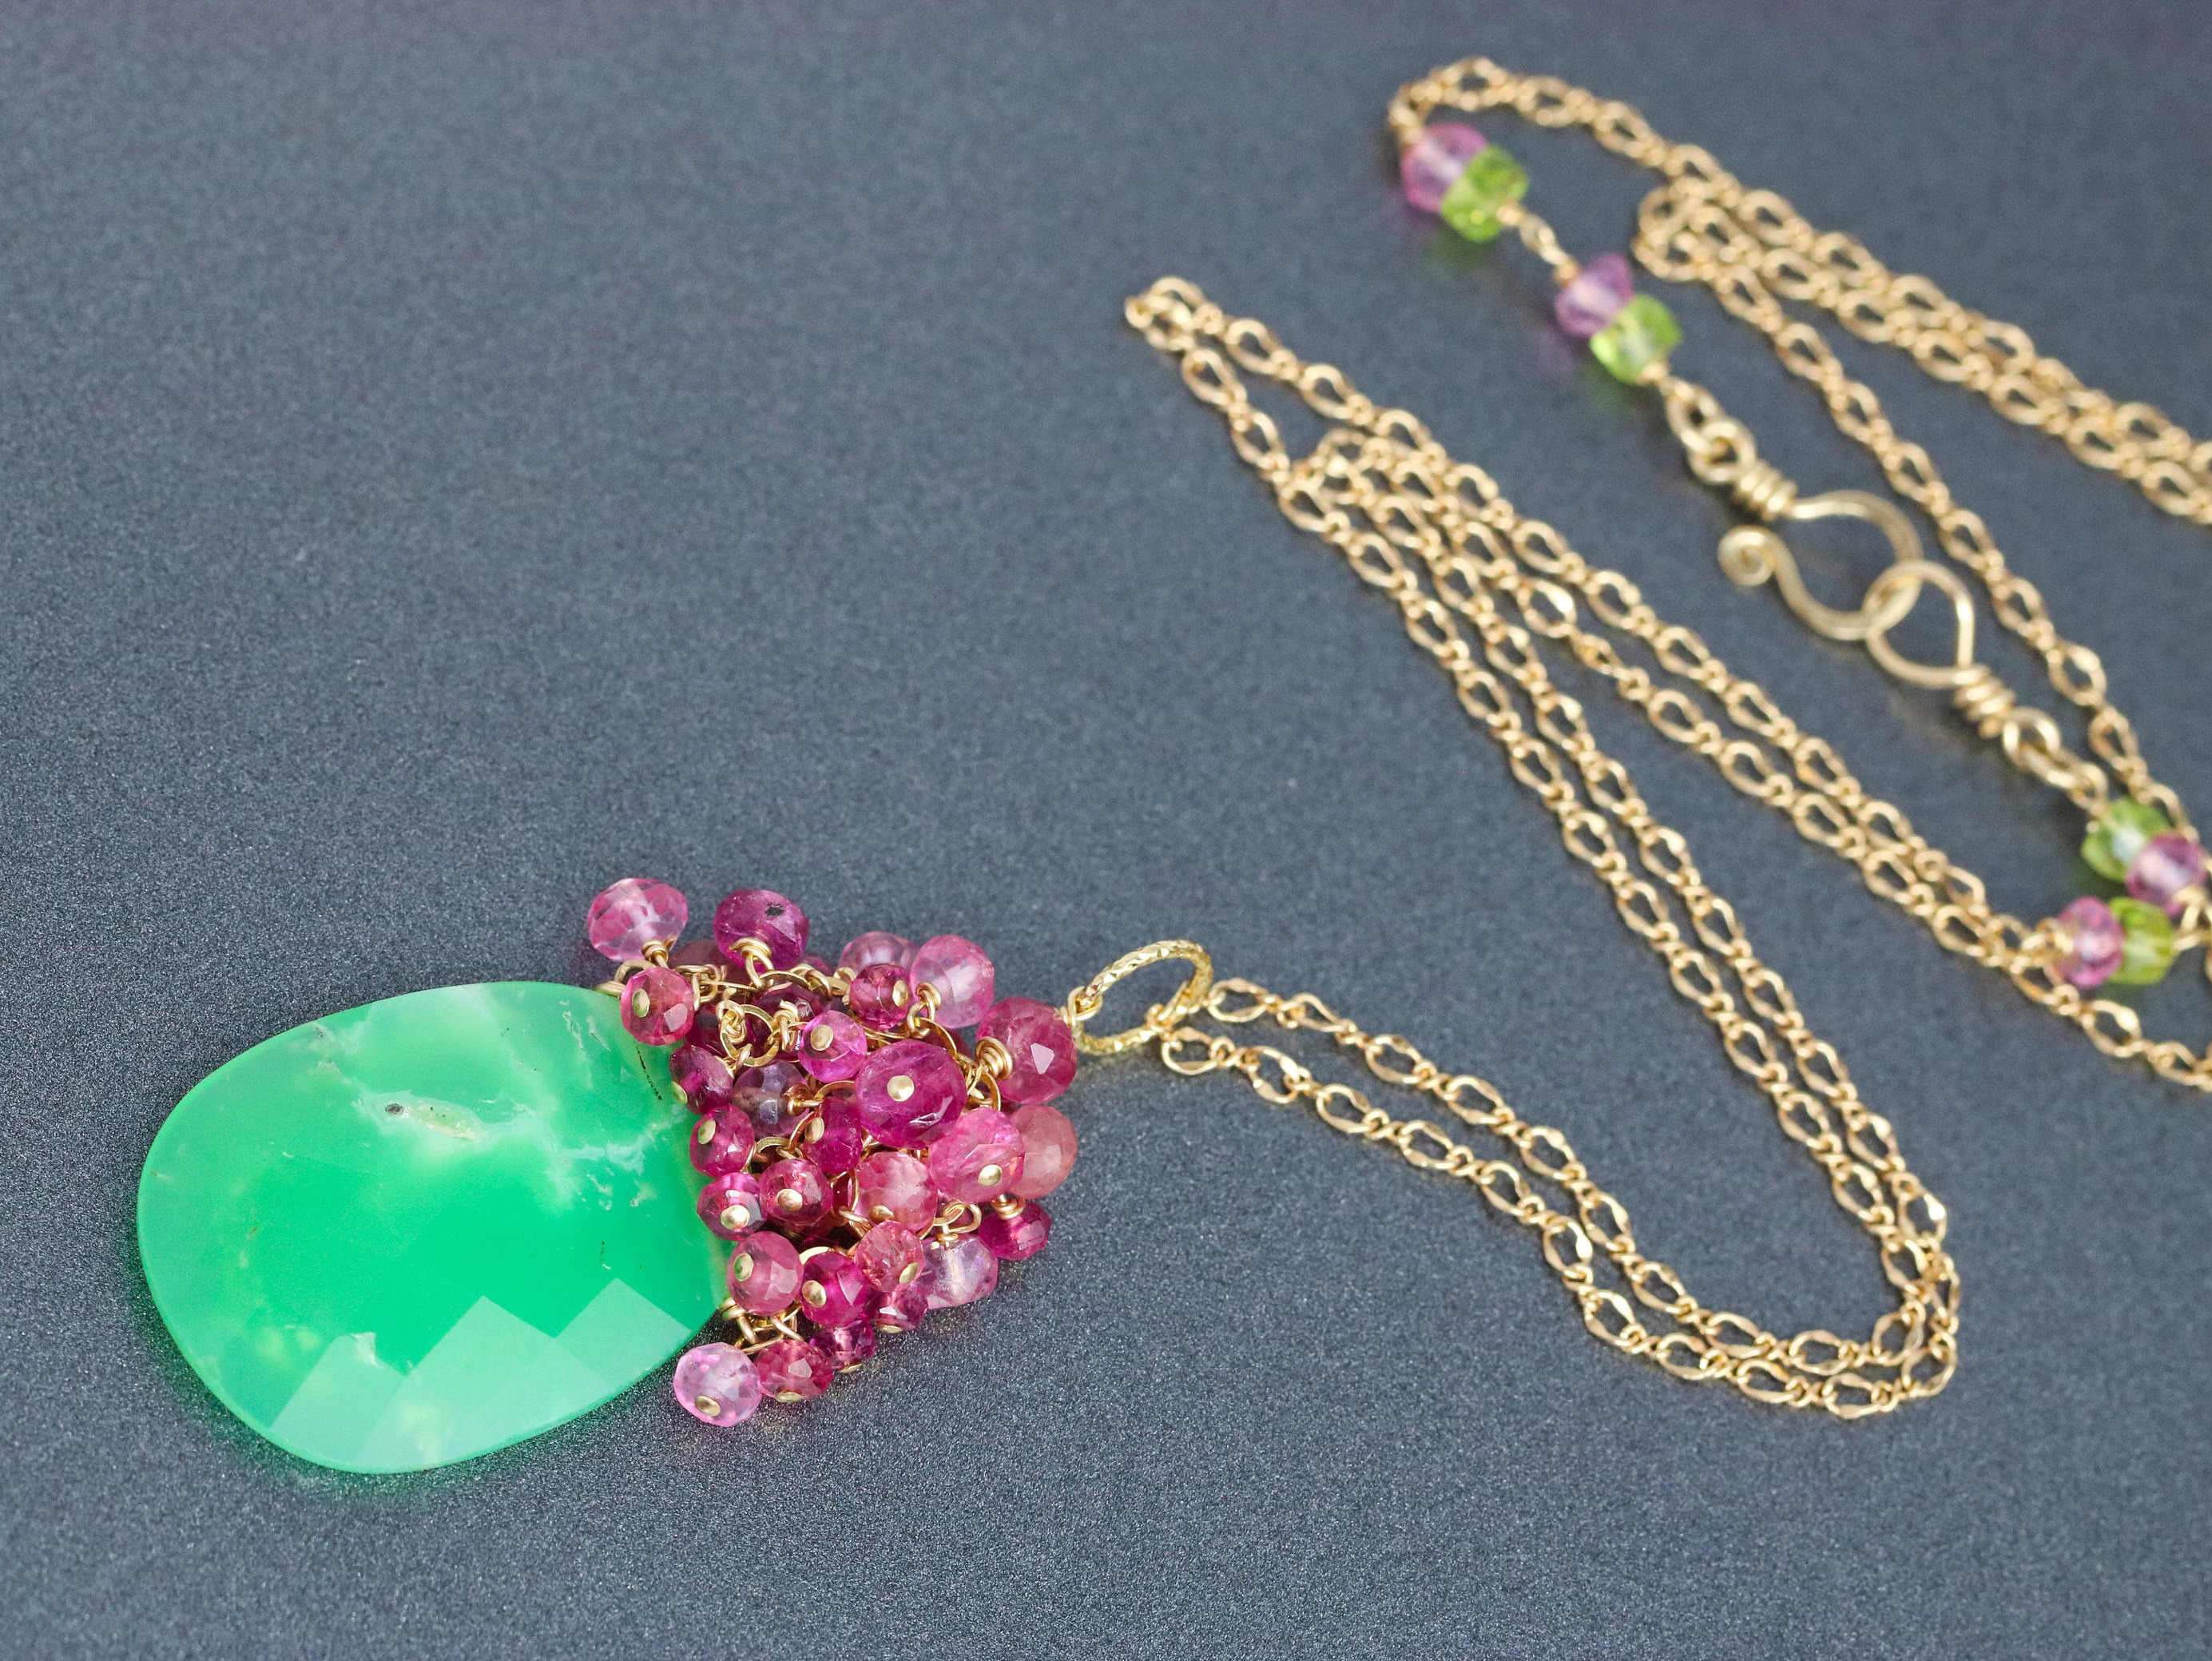 gallery yellow neuwirth jewelry with lyst irene chrysoprase necklace stones gold product